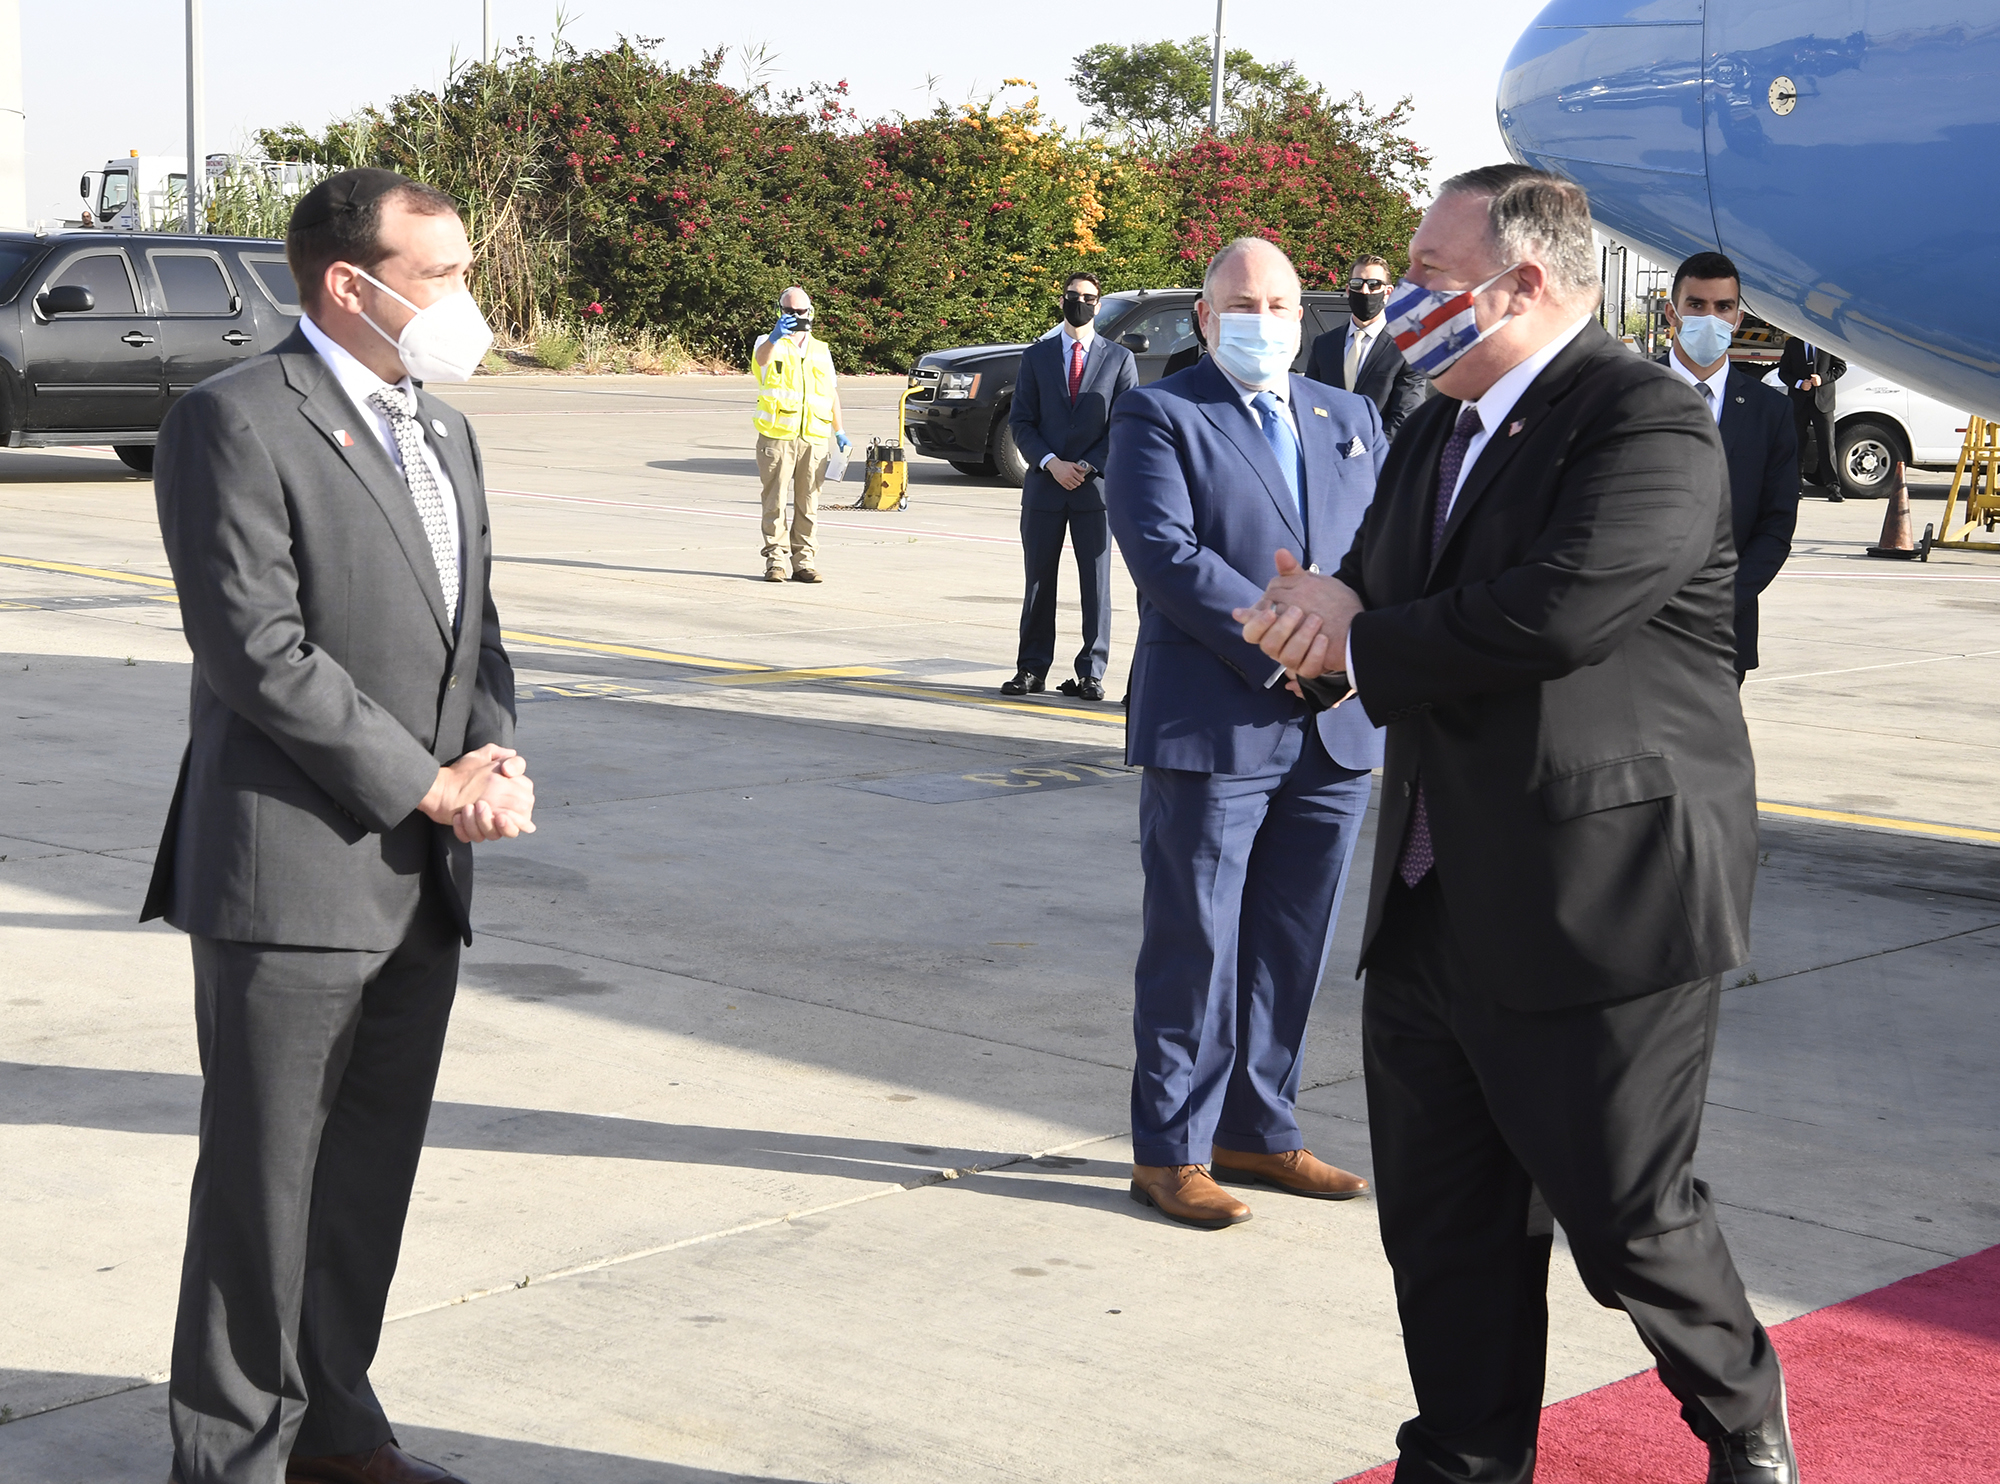 Under shadow of virus, Pompeo lands in Israel to talk annexation ...